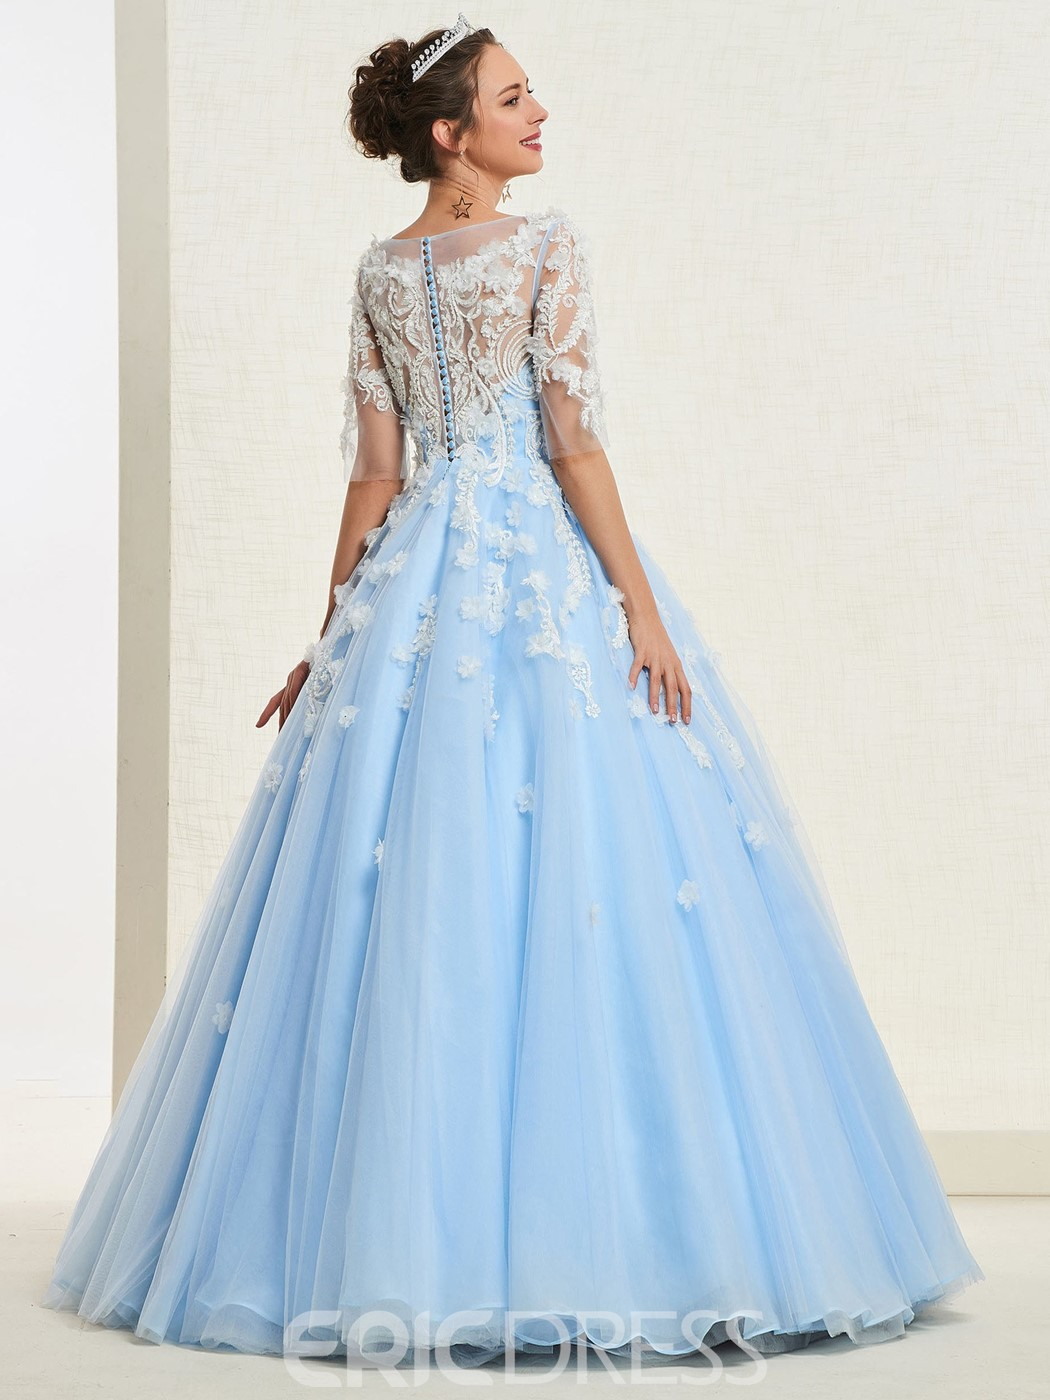 Ericdress Appliques Ball Gown Quinceanera Dress 2019